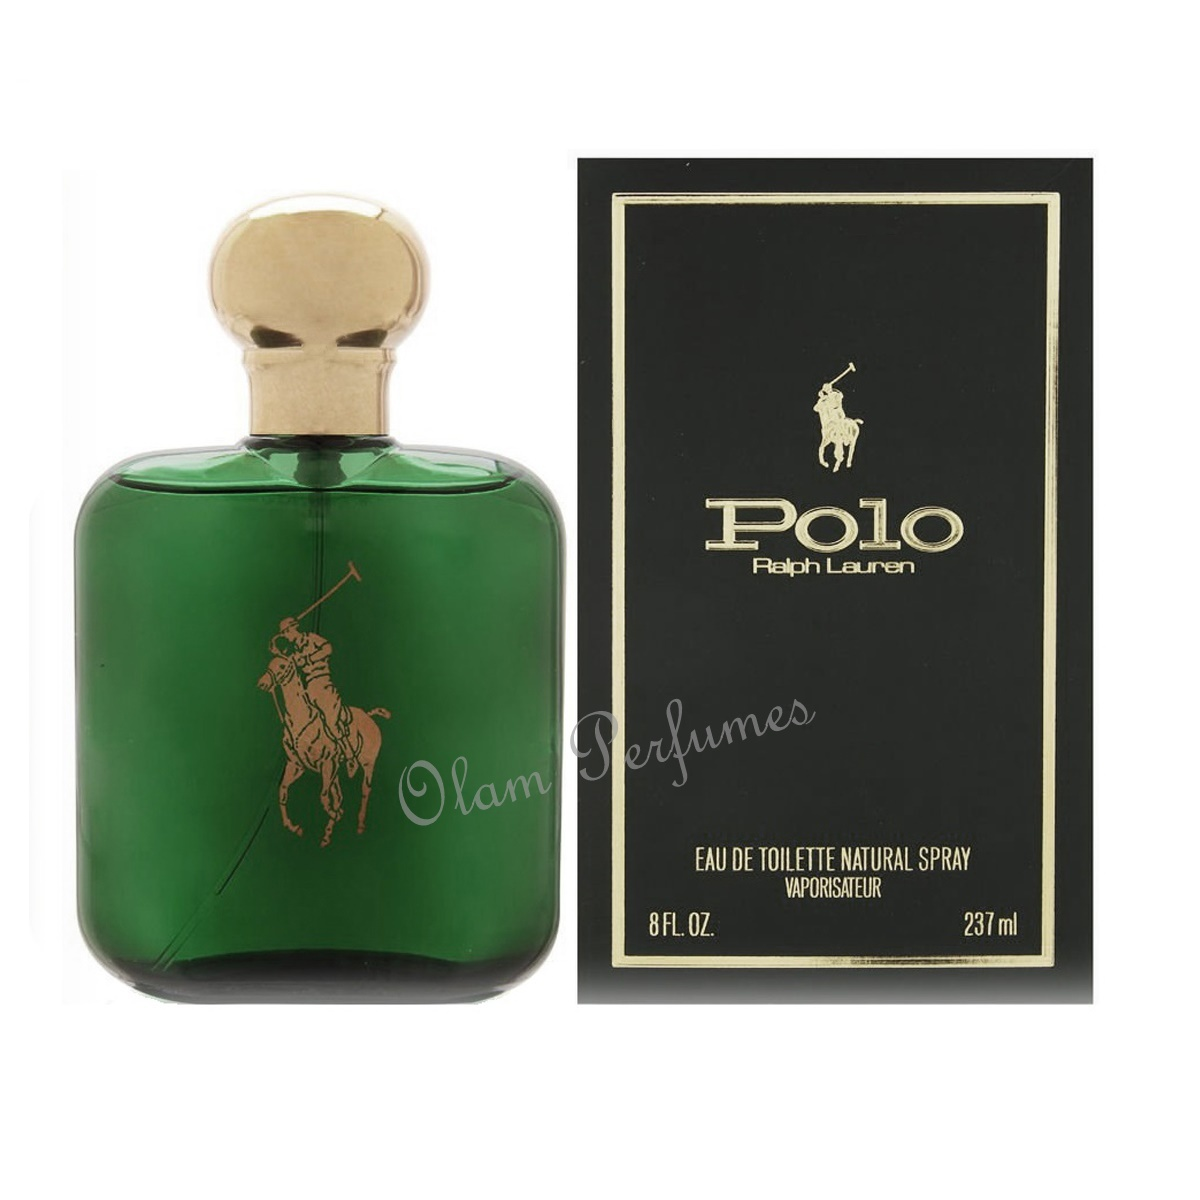 Ralph Lauren Polo Green Eau De Toilette Spray 8oz 237ml